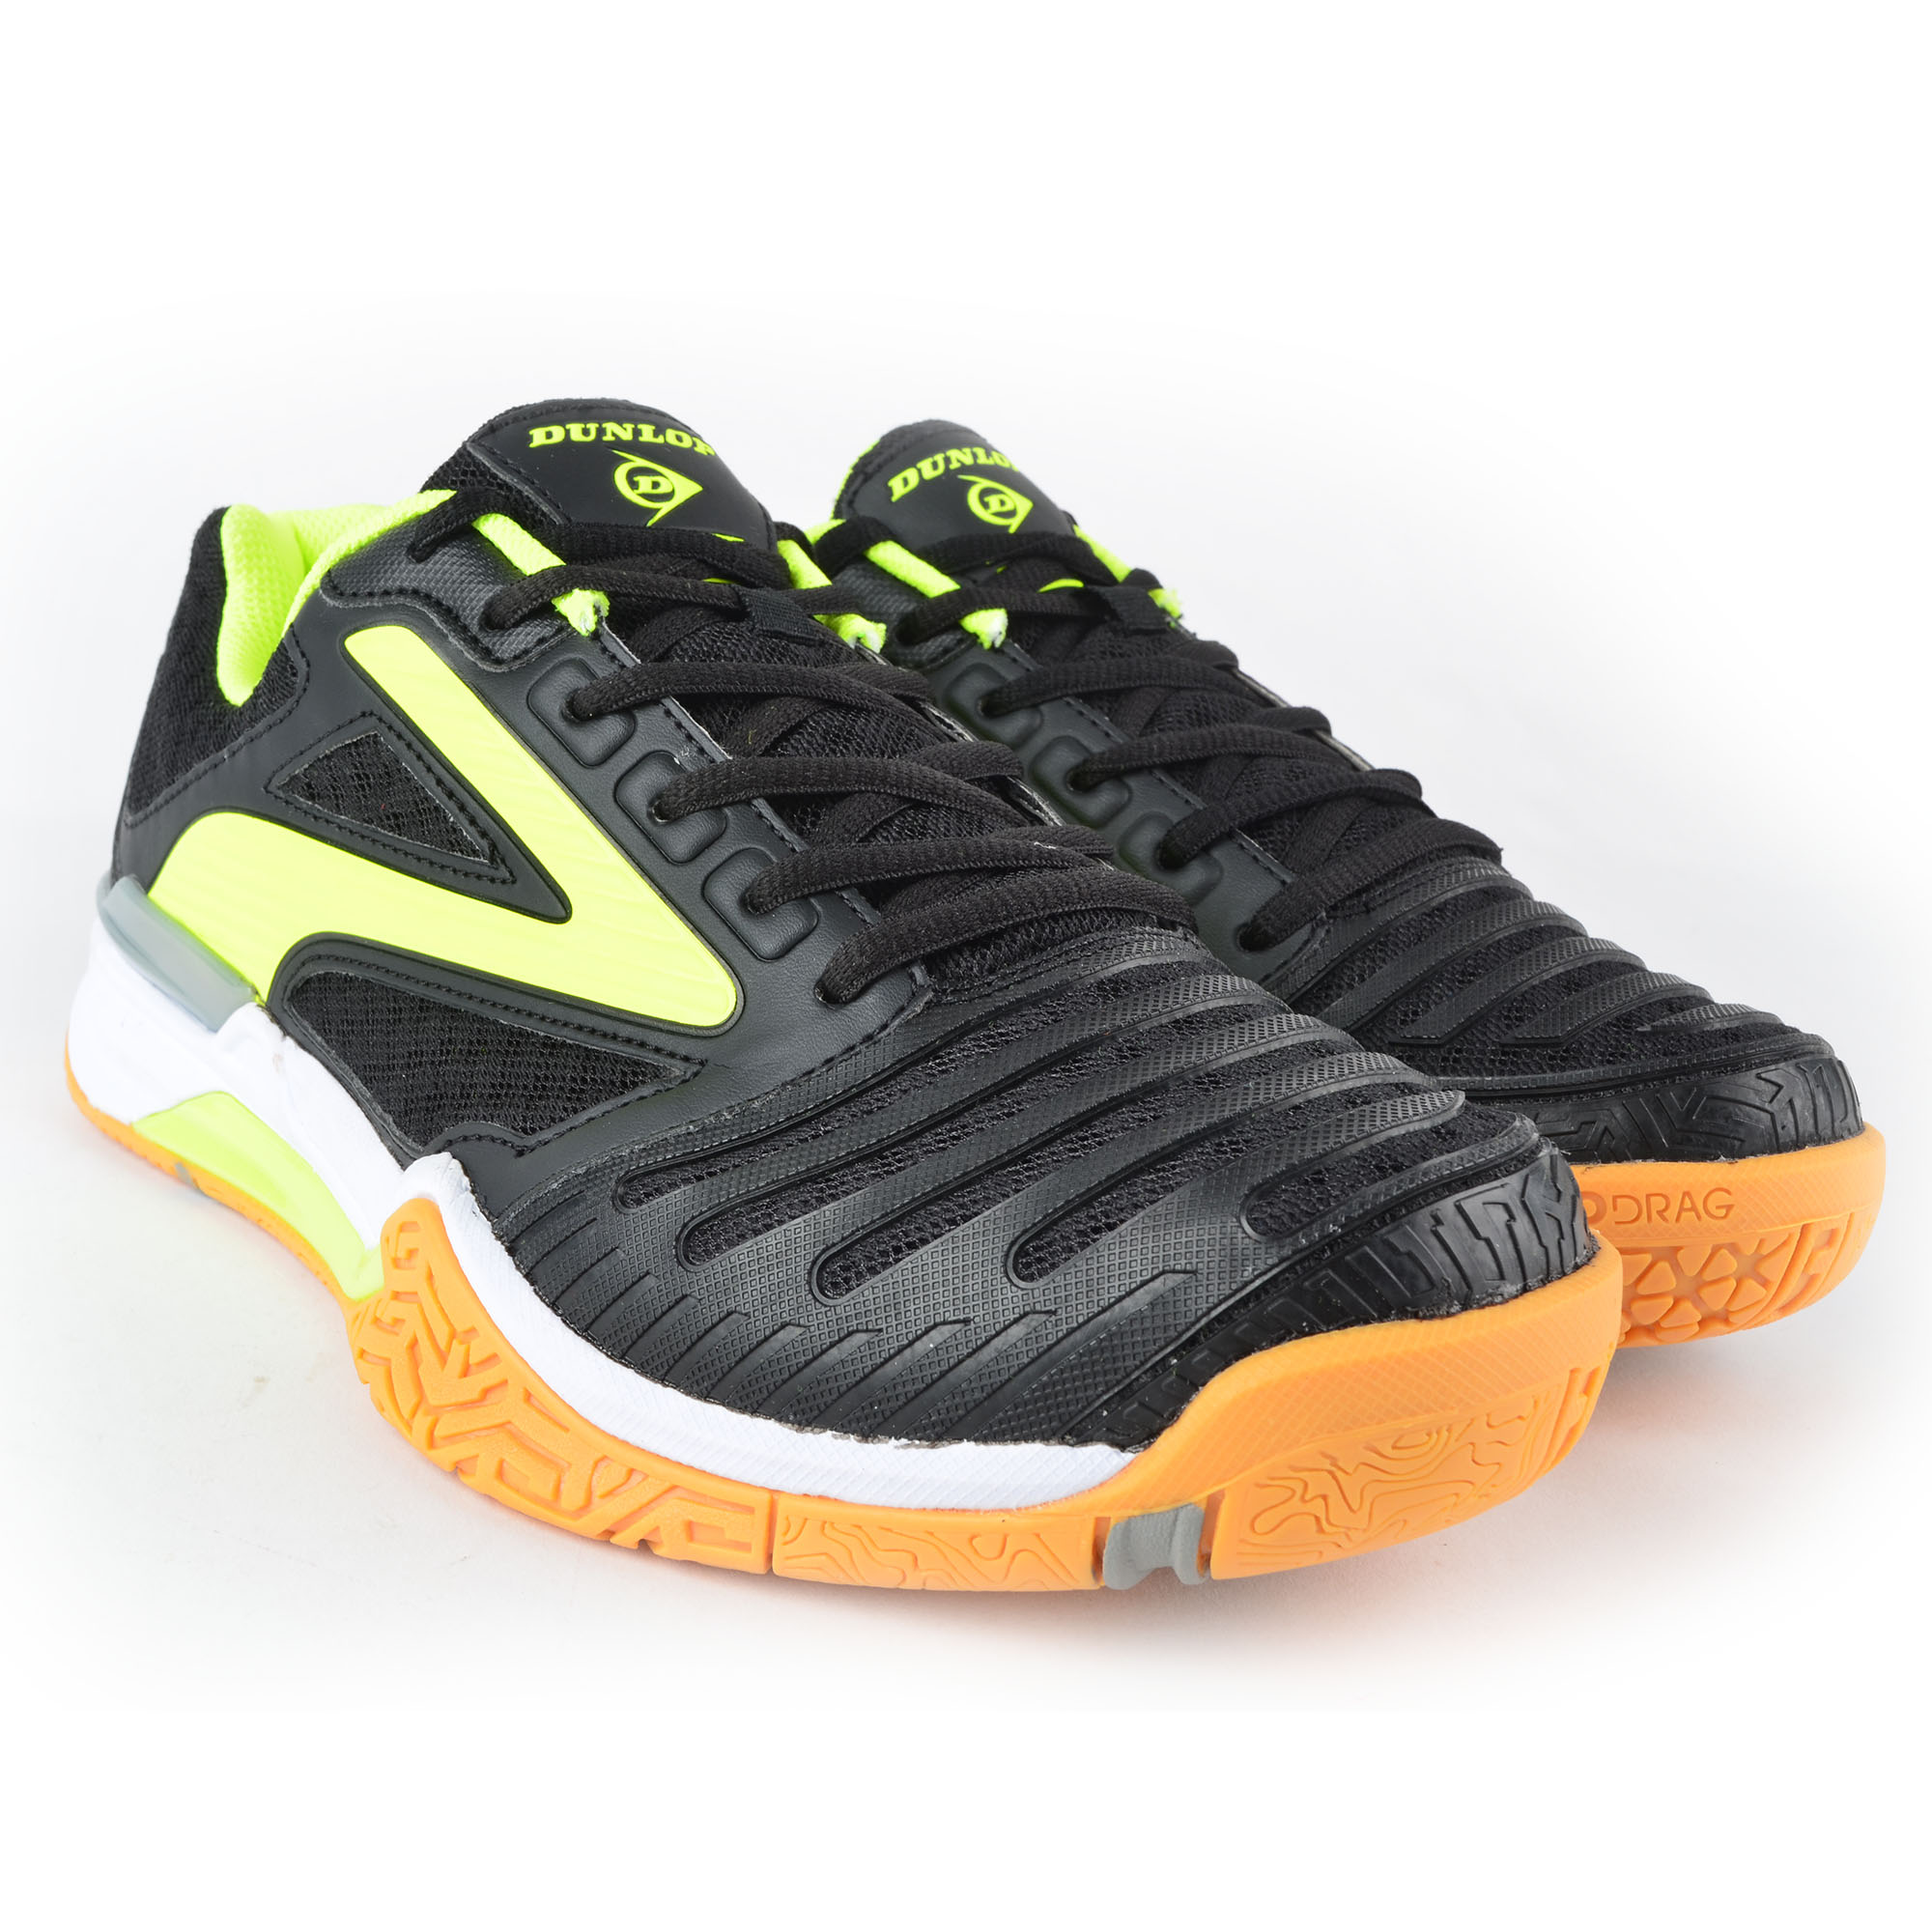 Dunlop Ultimate Pro Indoor Court Shoes - 9 UK